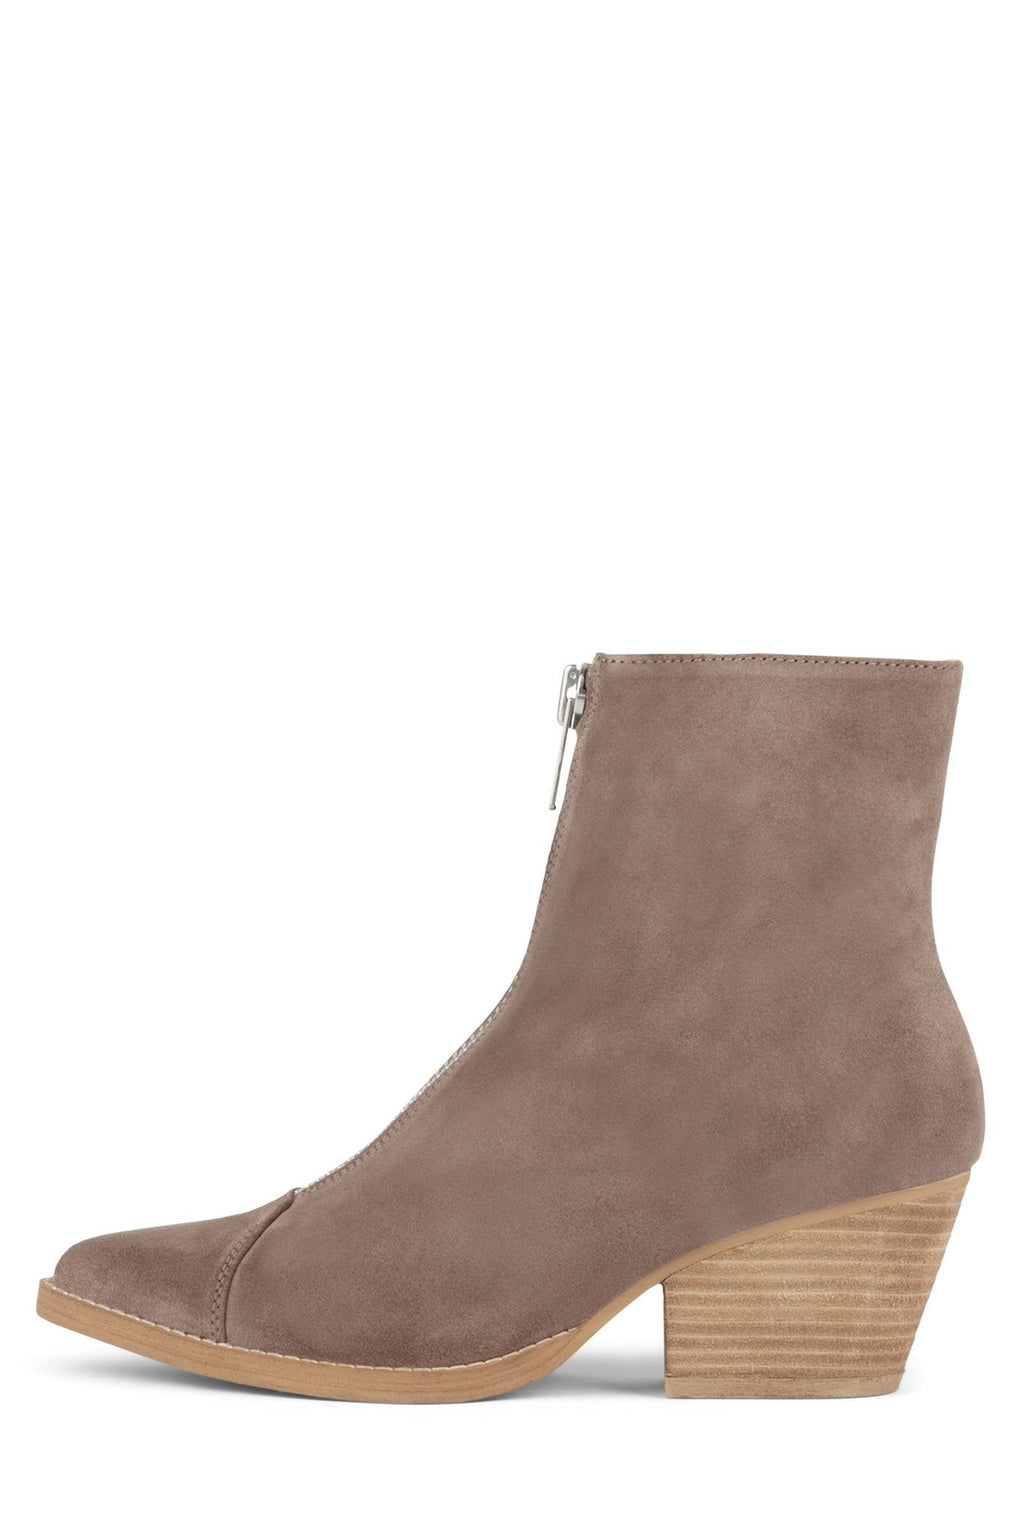 LANDYN Bootie Jeffrey Campbell Taupe Suede 6